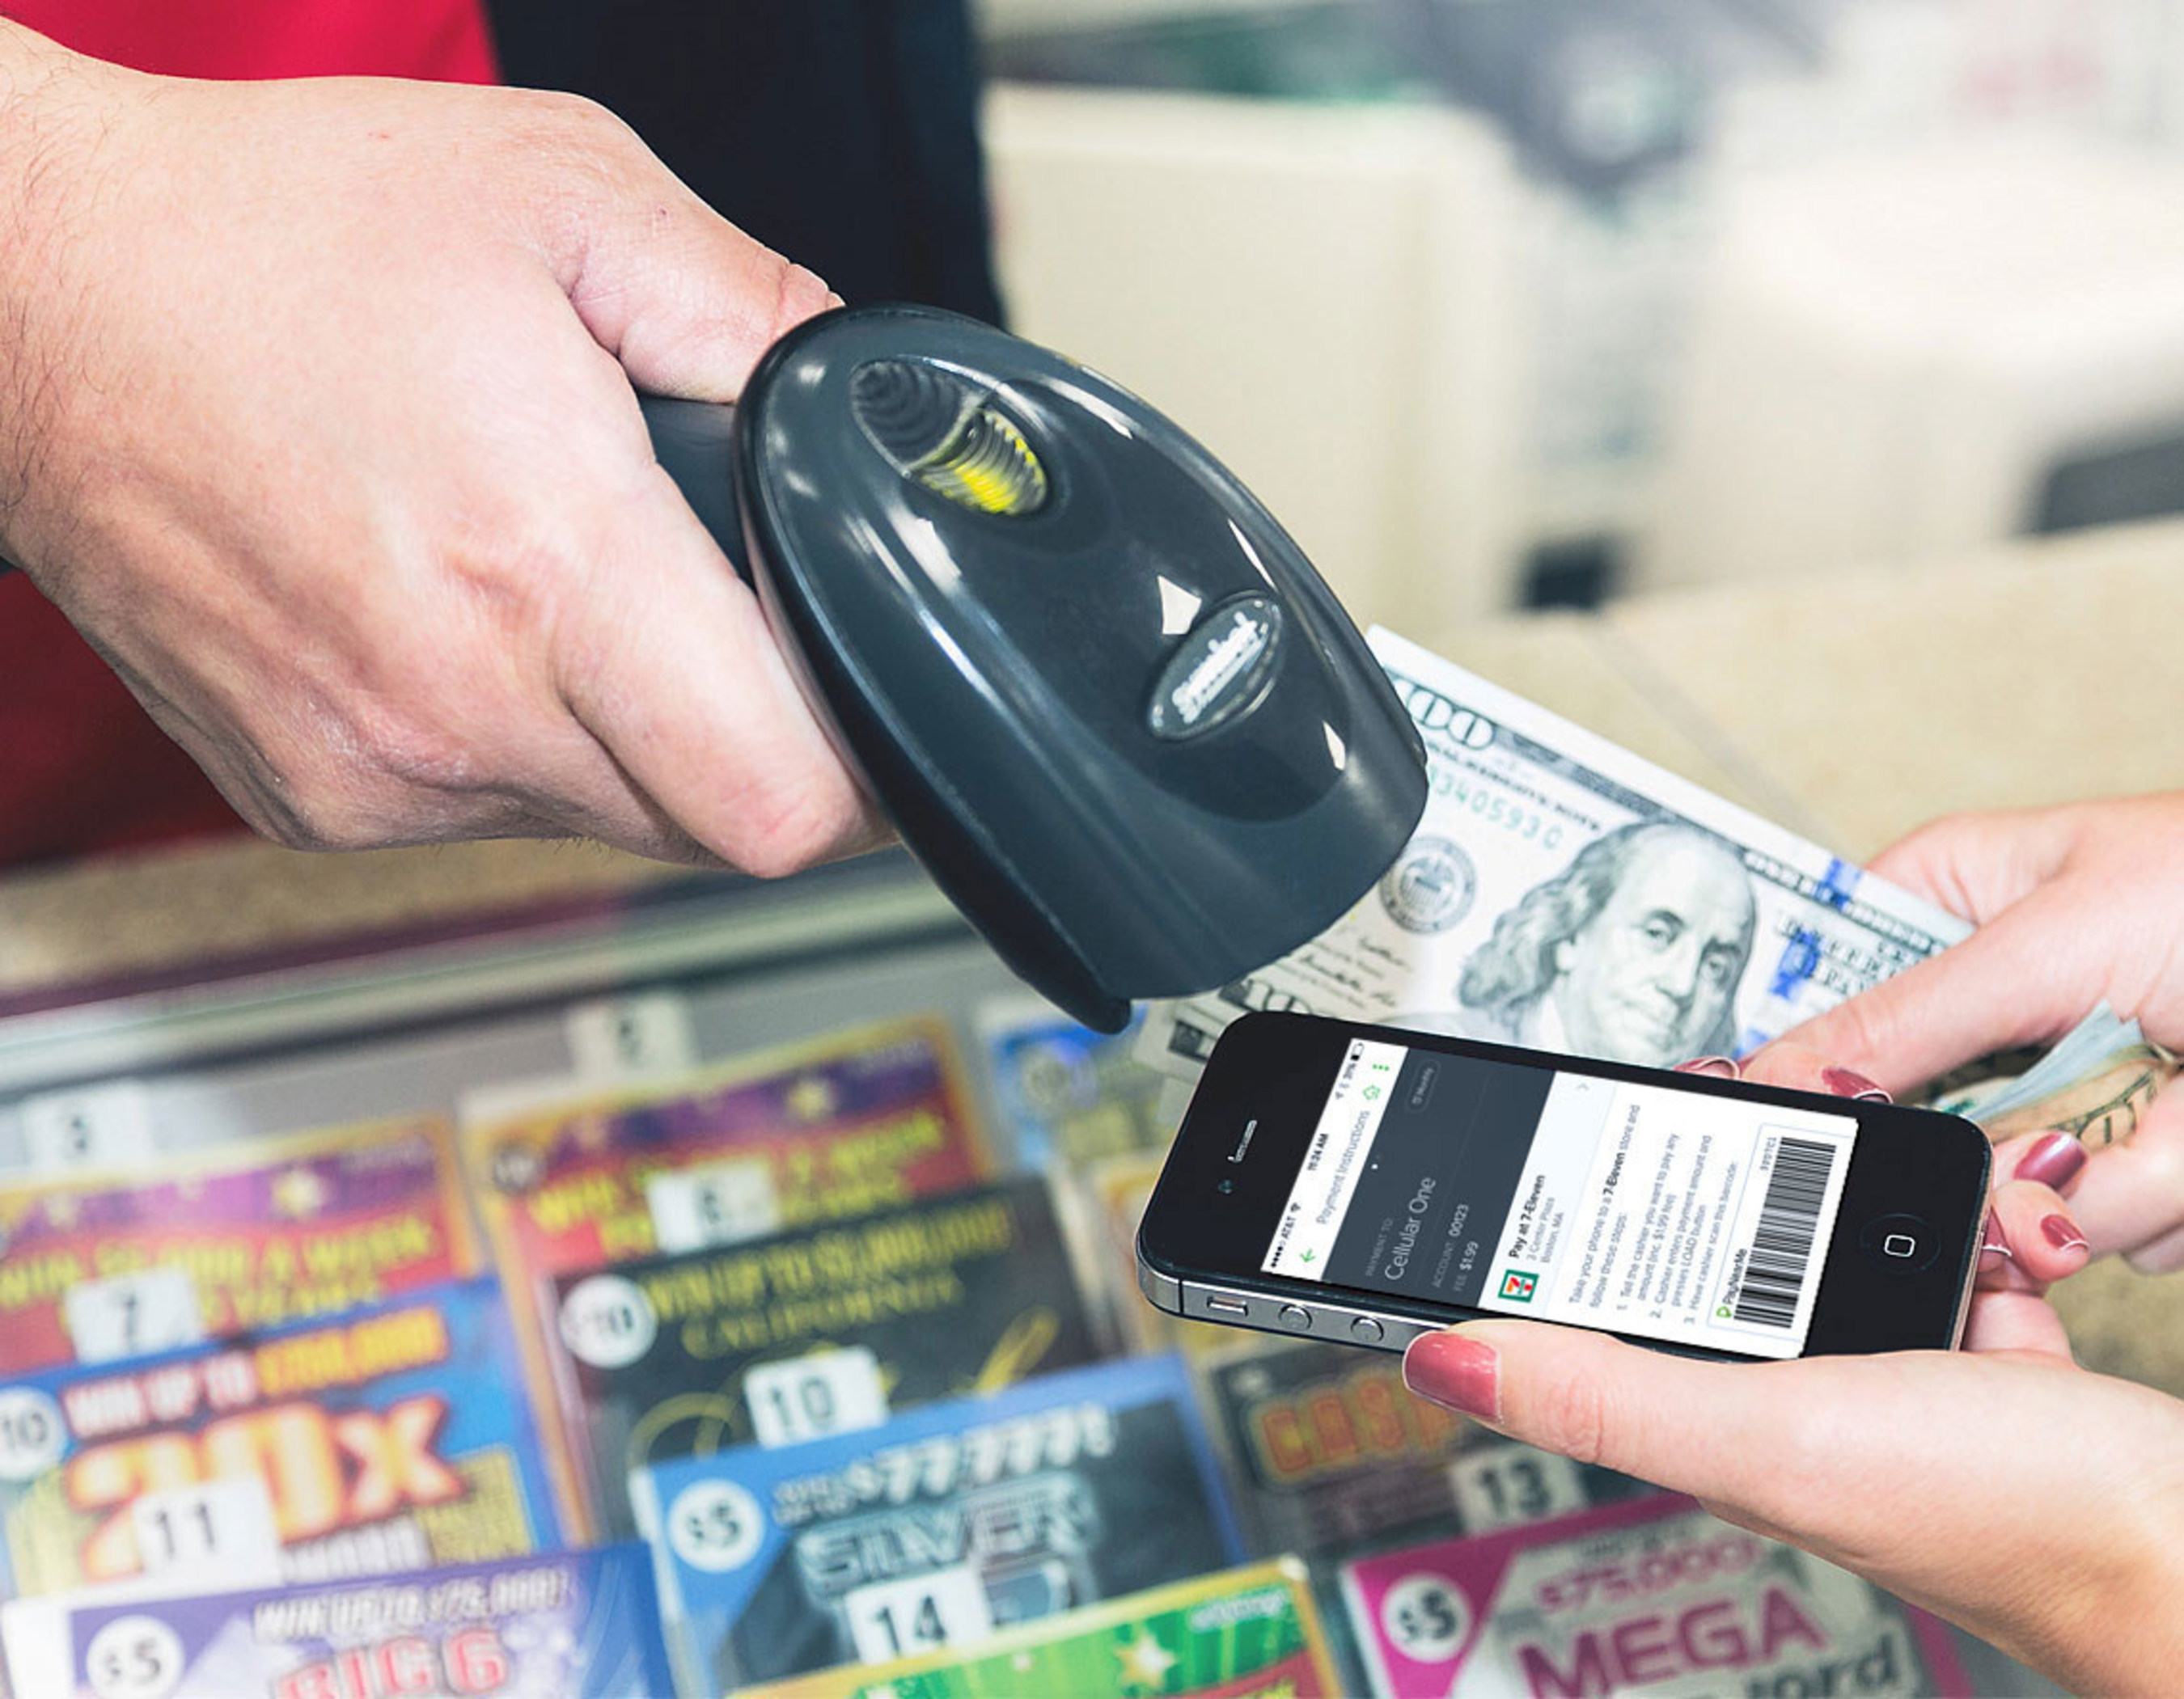 7-Eleven's new Bill Pay App operated by PayNearMe makes paying thousands of bills with cash convenient 24/7